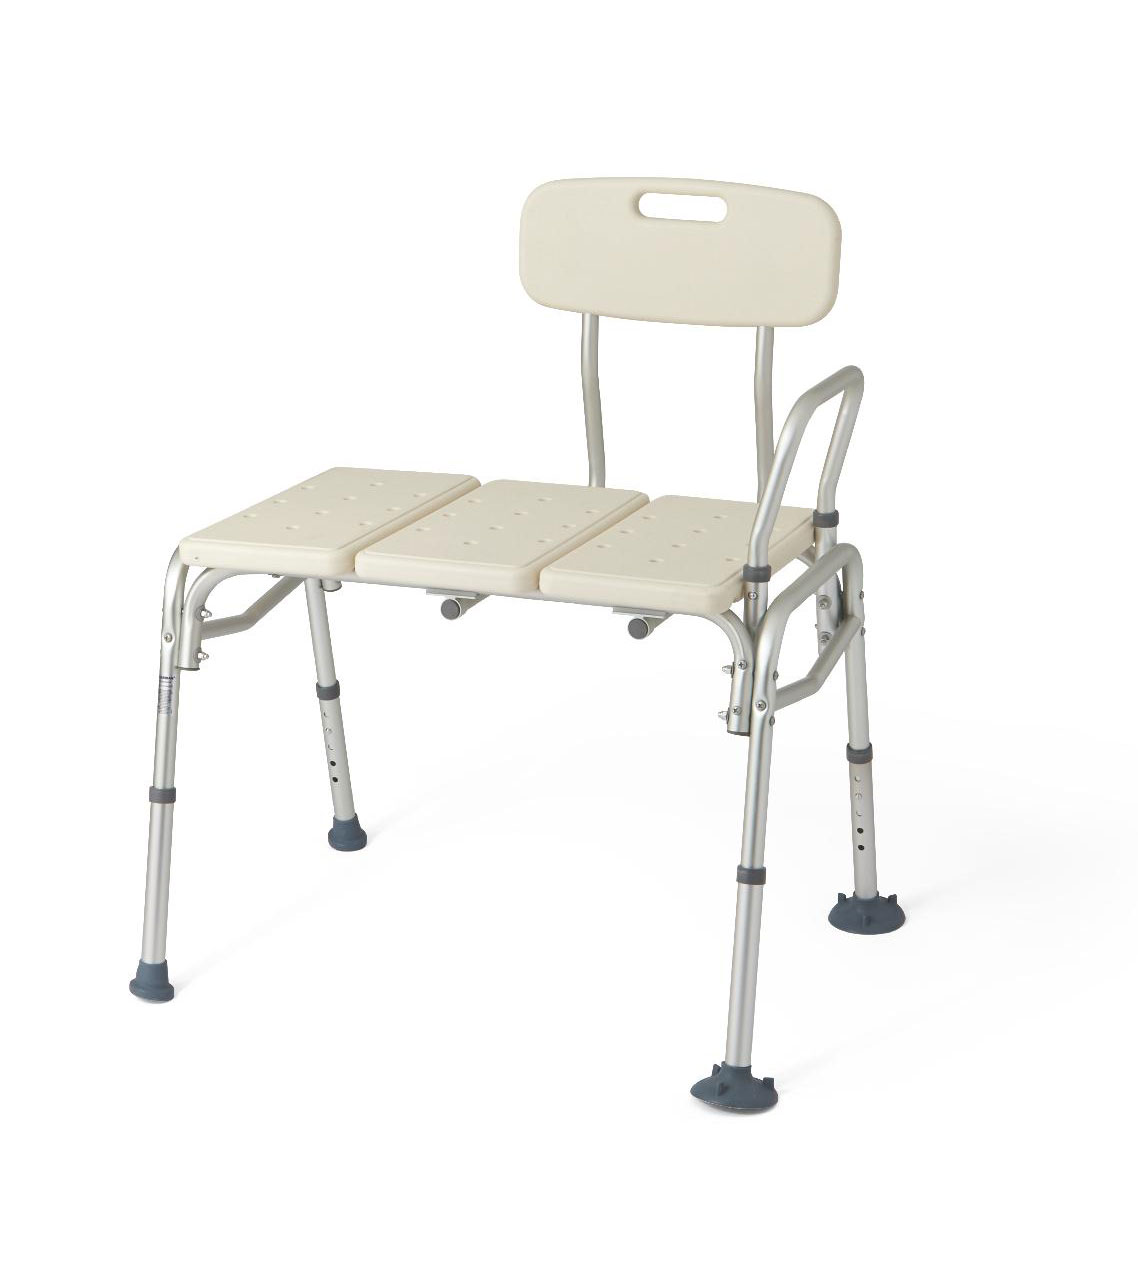 Transfer Tub Bench | Tub Transfer Bench Images | Medical Transfer Bench